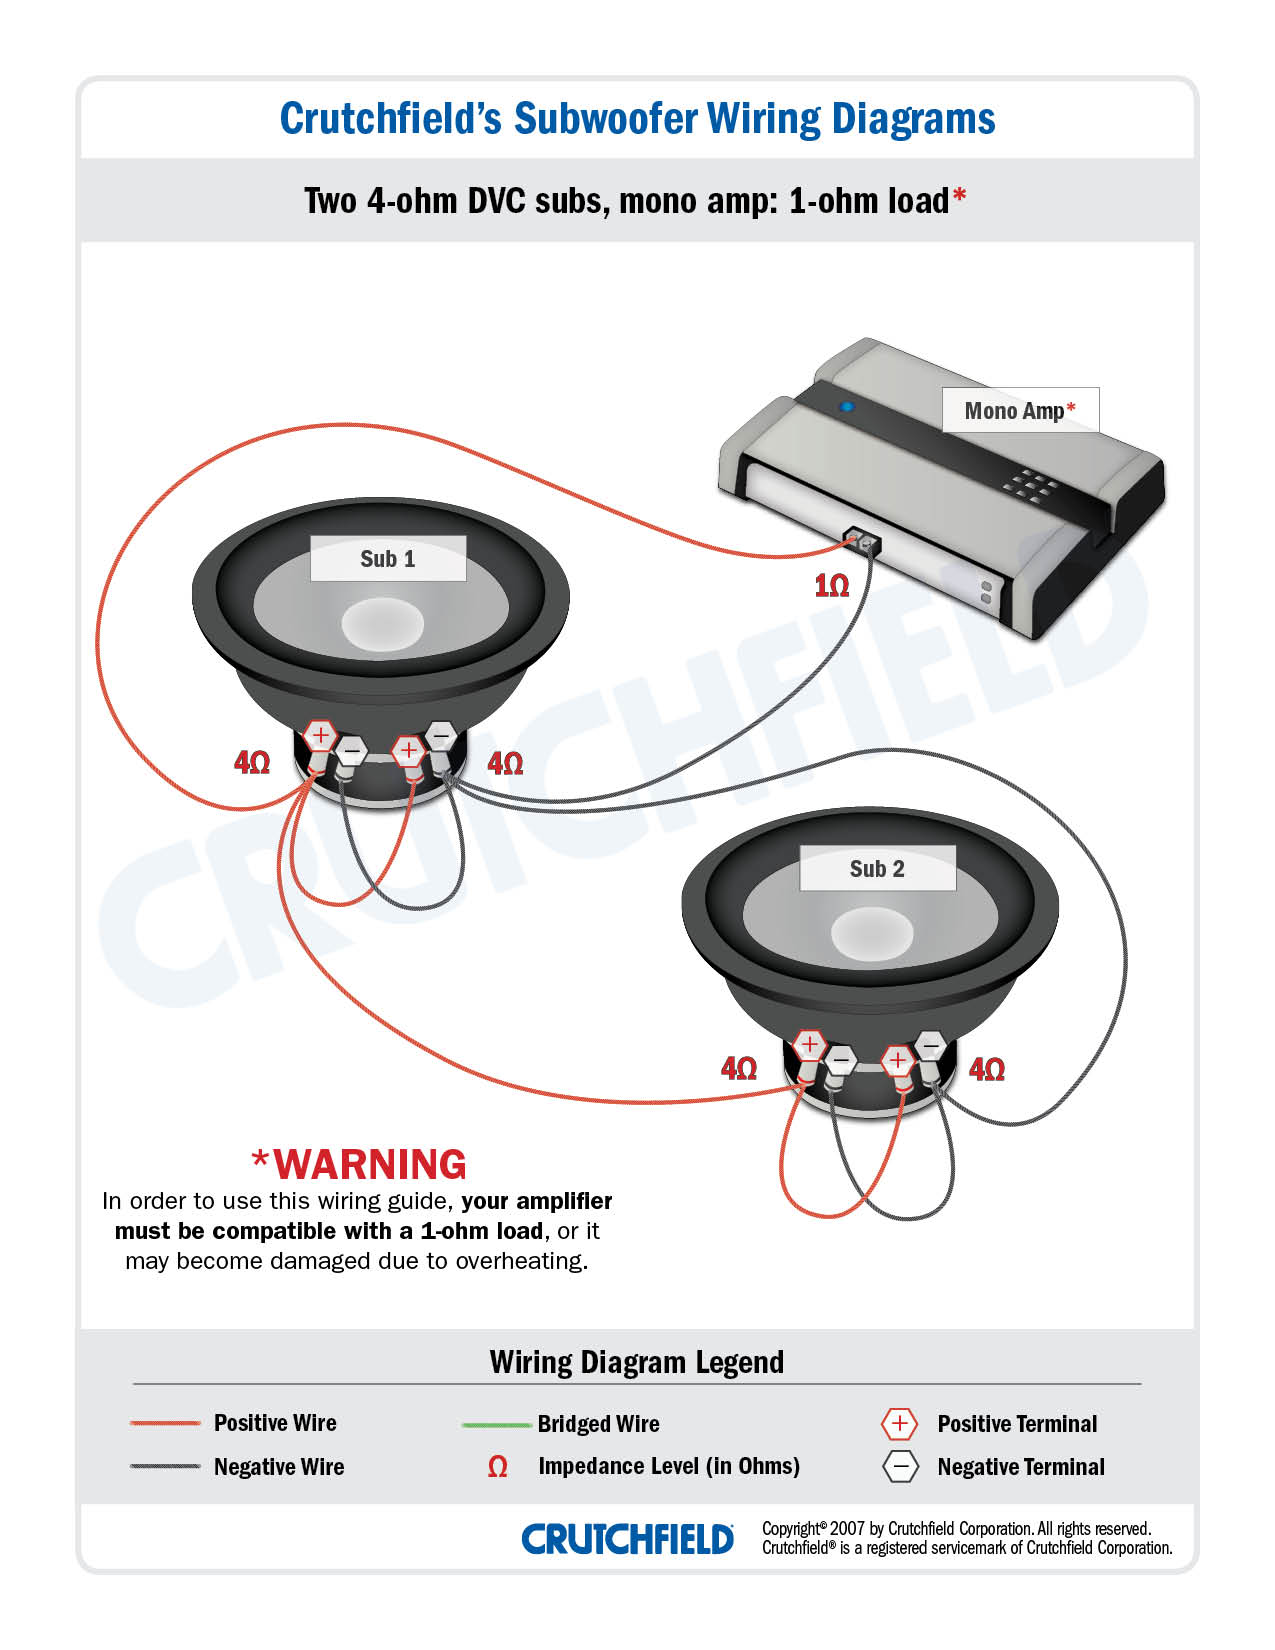 Subwoofer Wiring Diagrams How To Wire Your Subs Front Dual Usb Diagram In Case The 4 Ohm Scheme Is Only Safe Way Connect That Gear Together